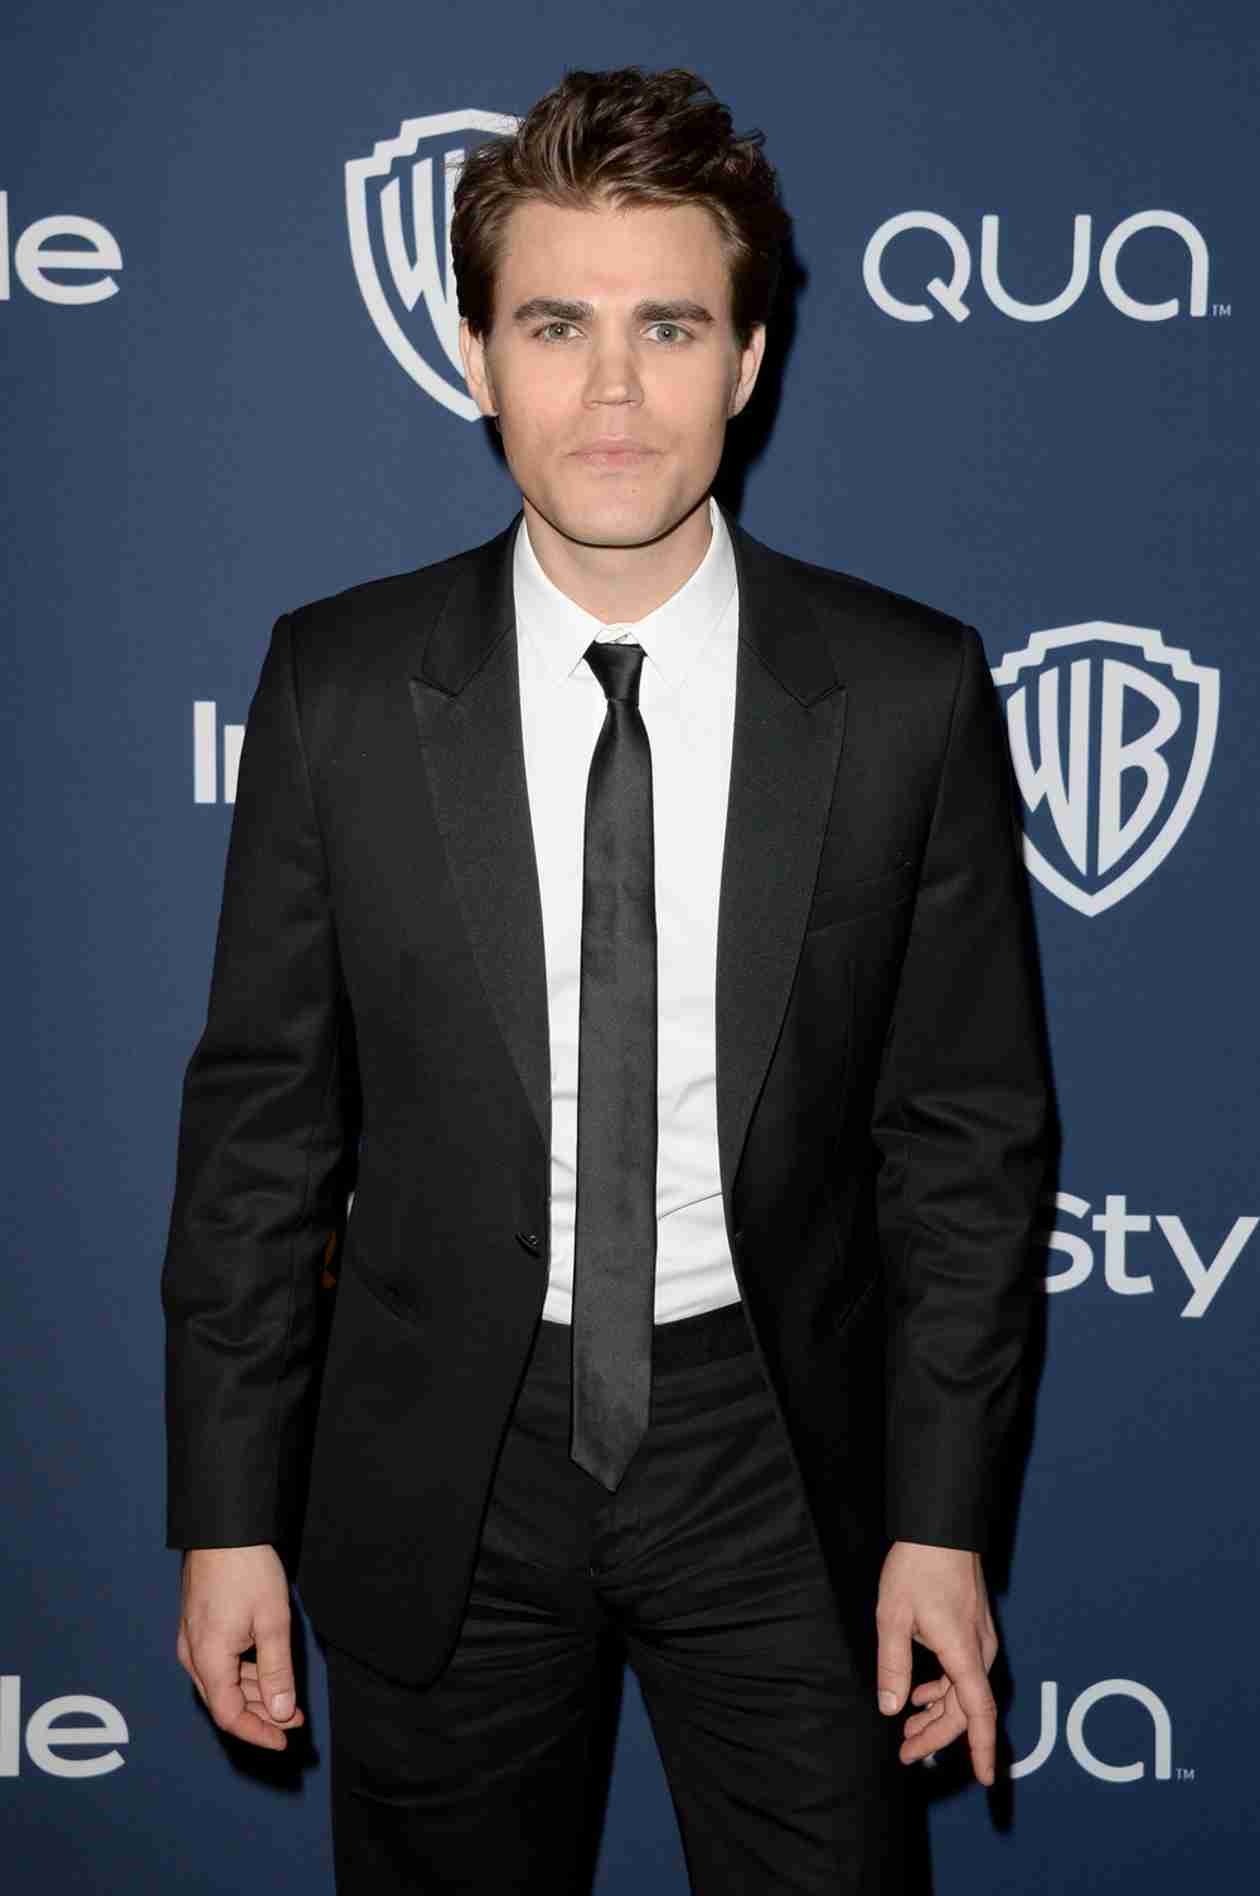 Paul Wesley Asks Fans to Help His Cancer-Stricken Friend (VIDEO)